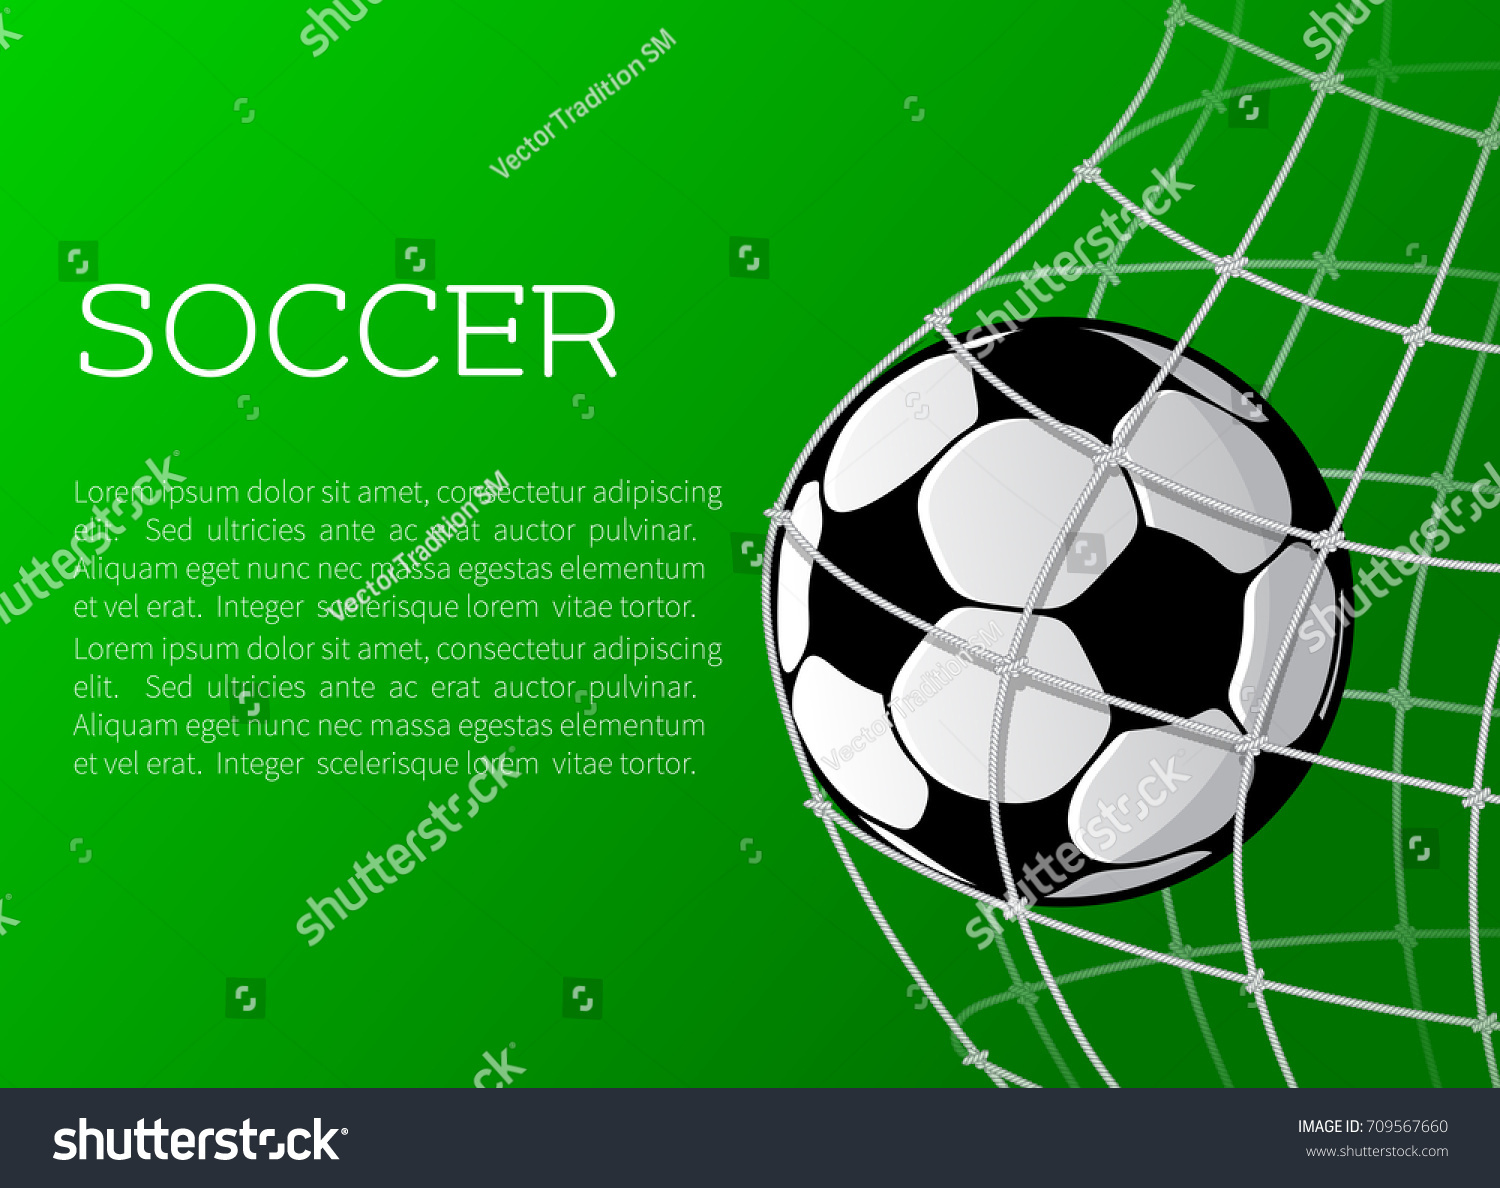 Soccer match football sport championship poster stock vector soccer match or football sport championship poster template vector football or soccer ball in goal pronofoot35fo Gallery